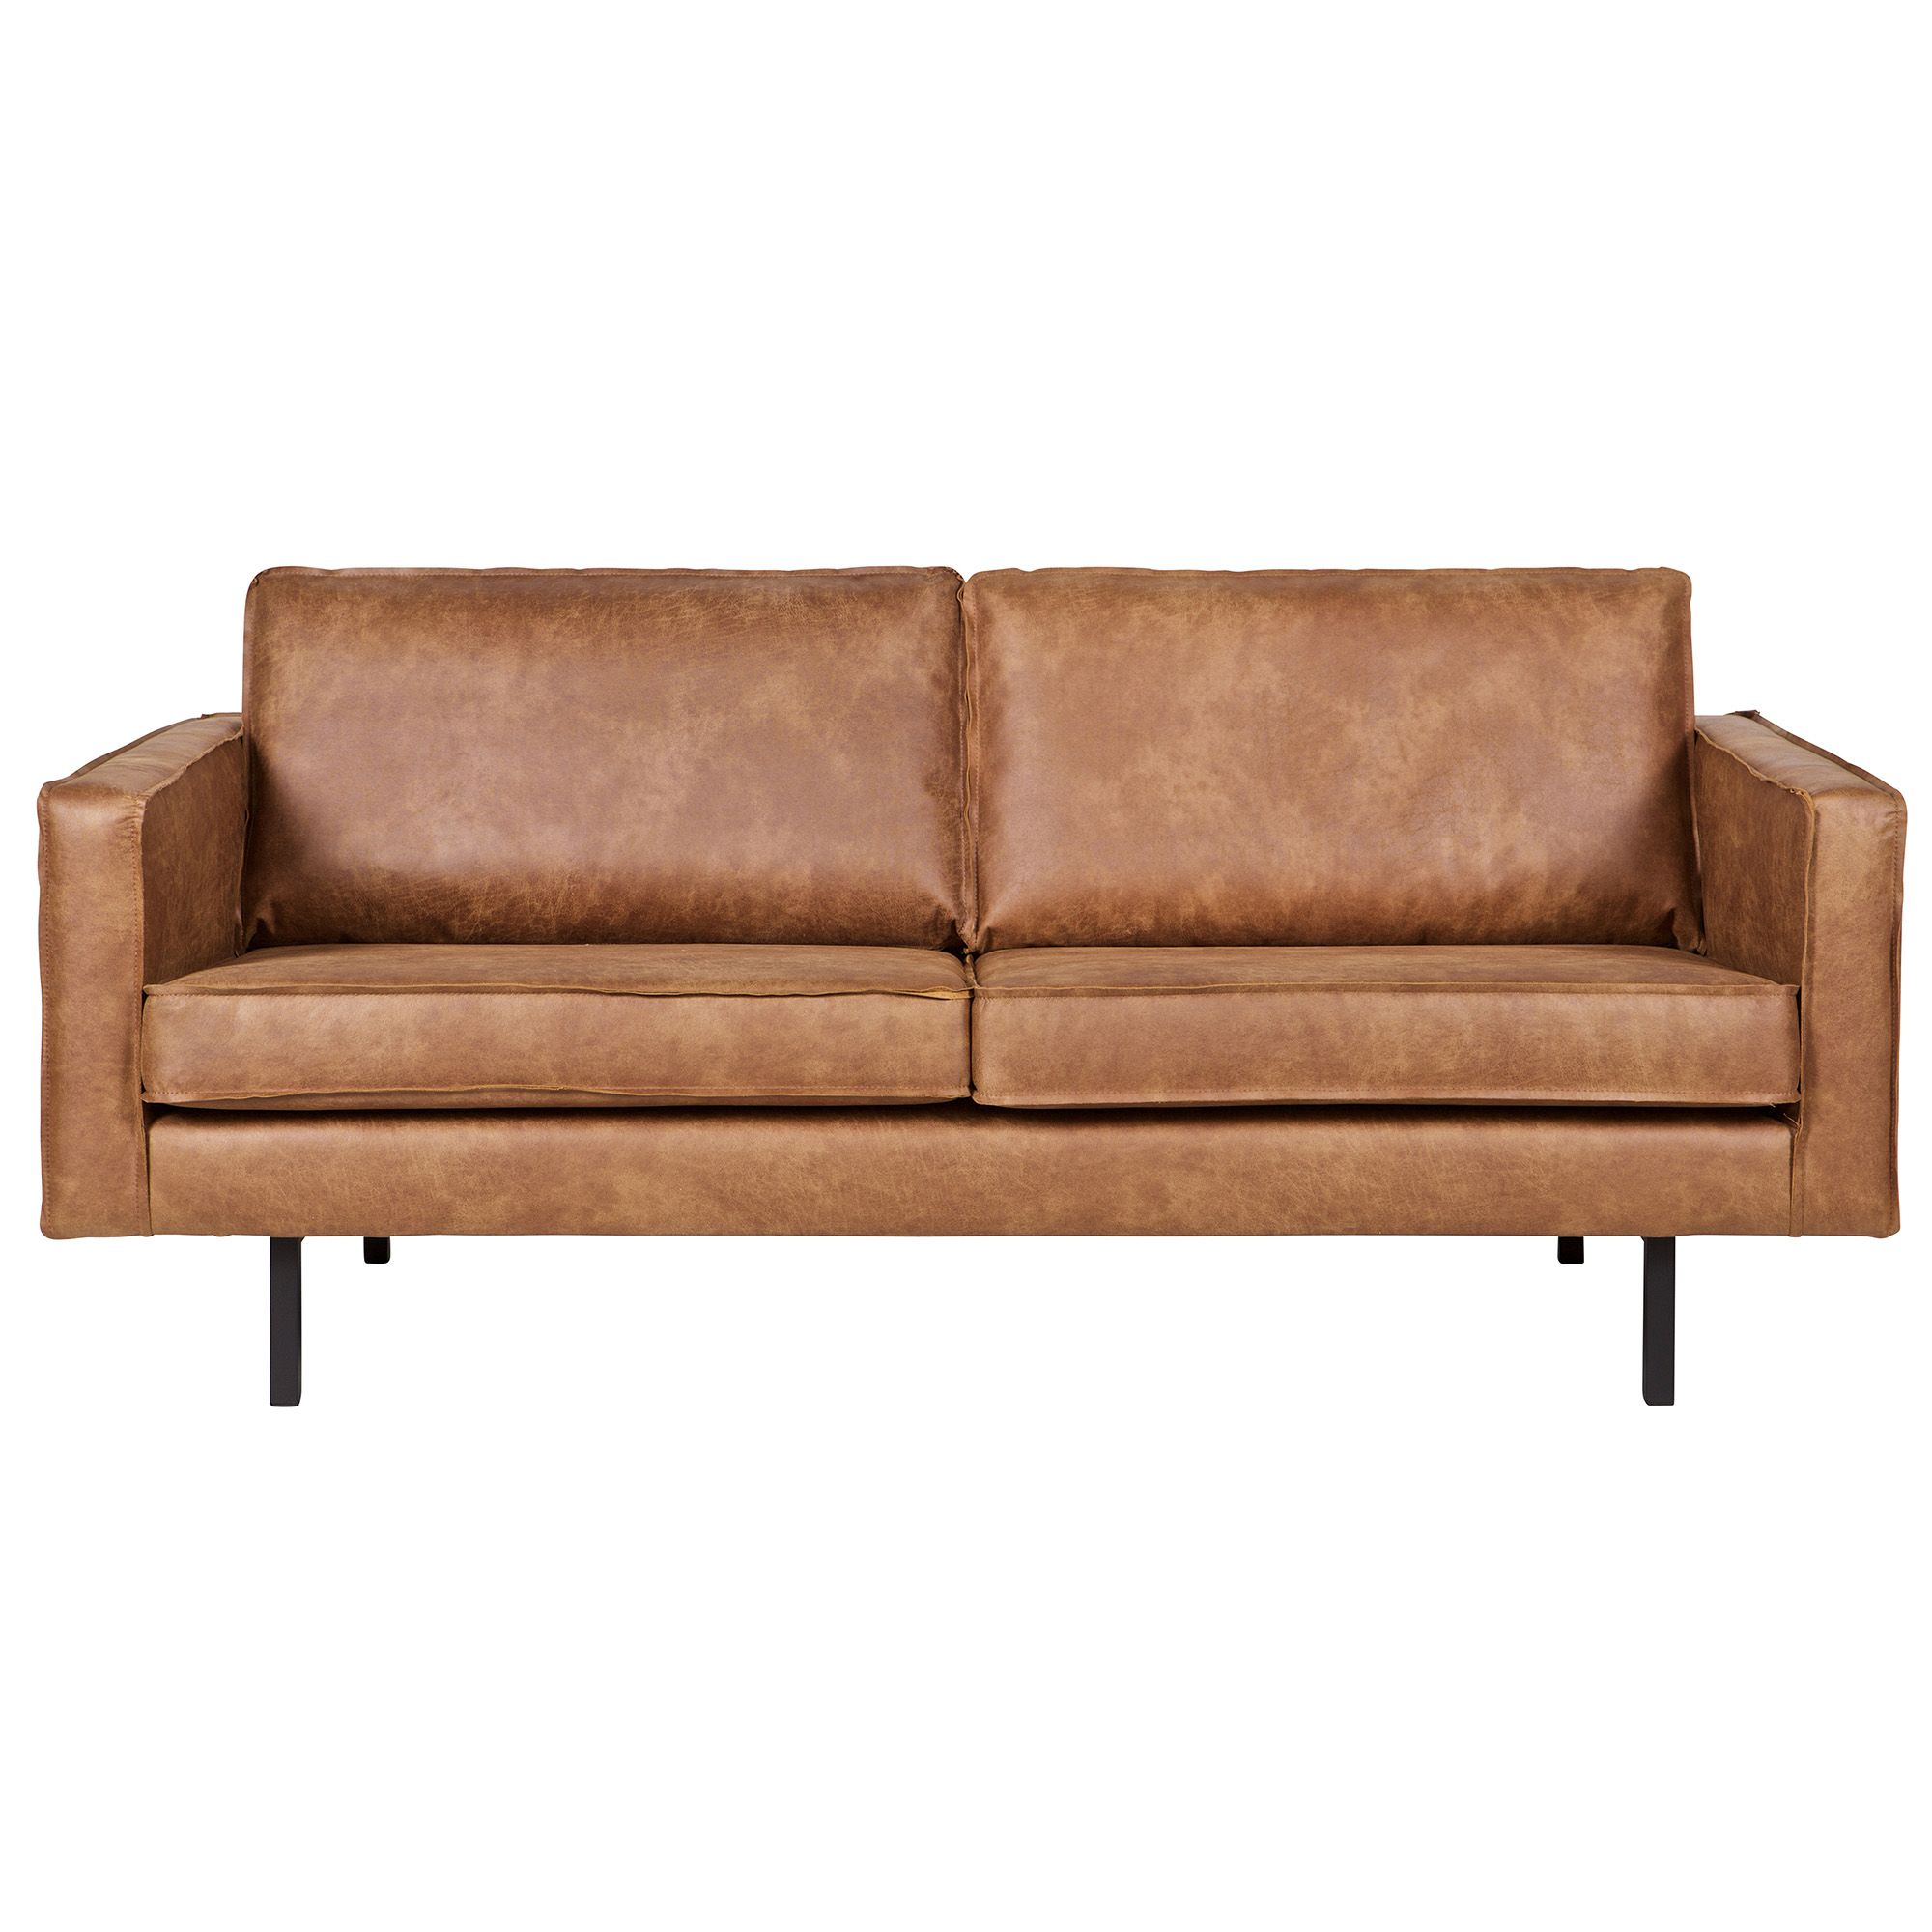 Outdoor Liege Liege 3 Seater Suede Leather Look Sofa Cognac